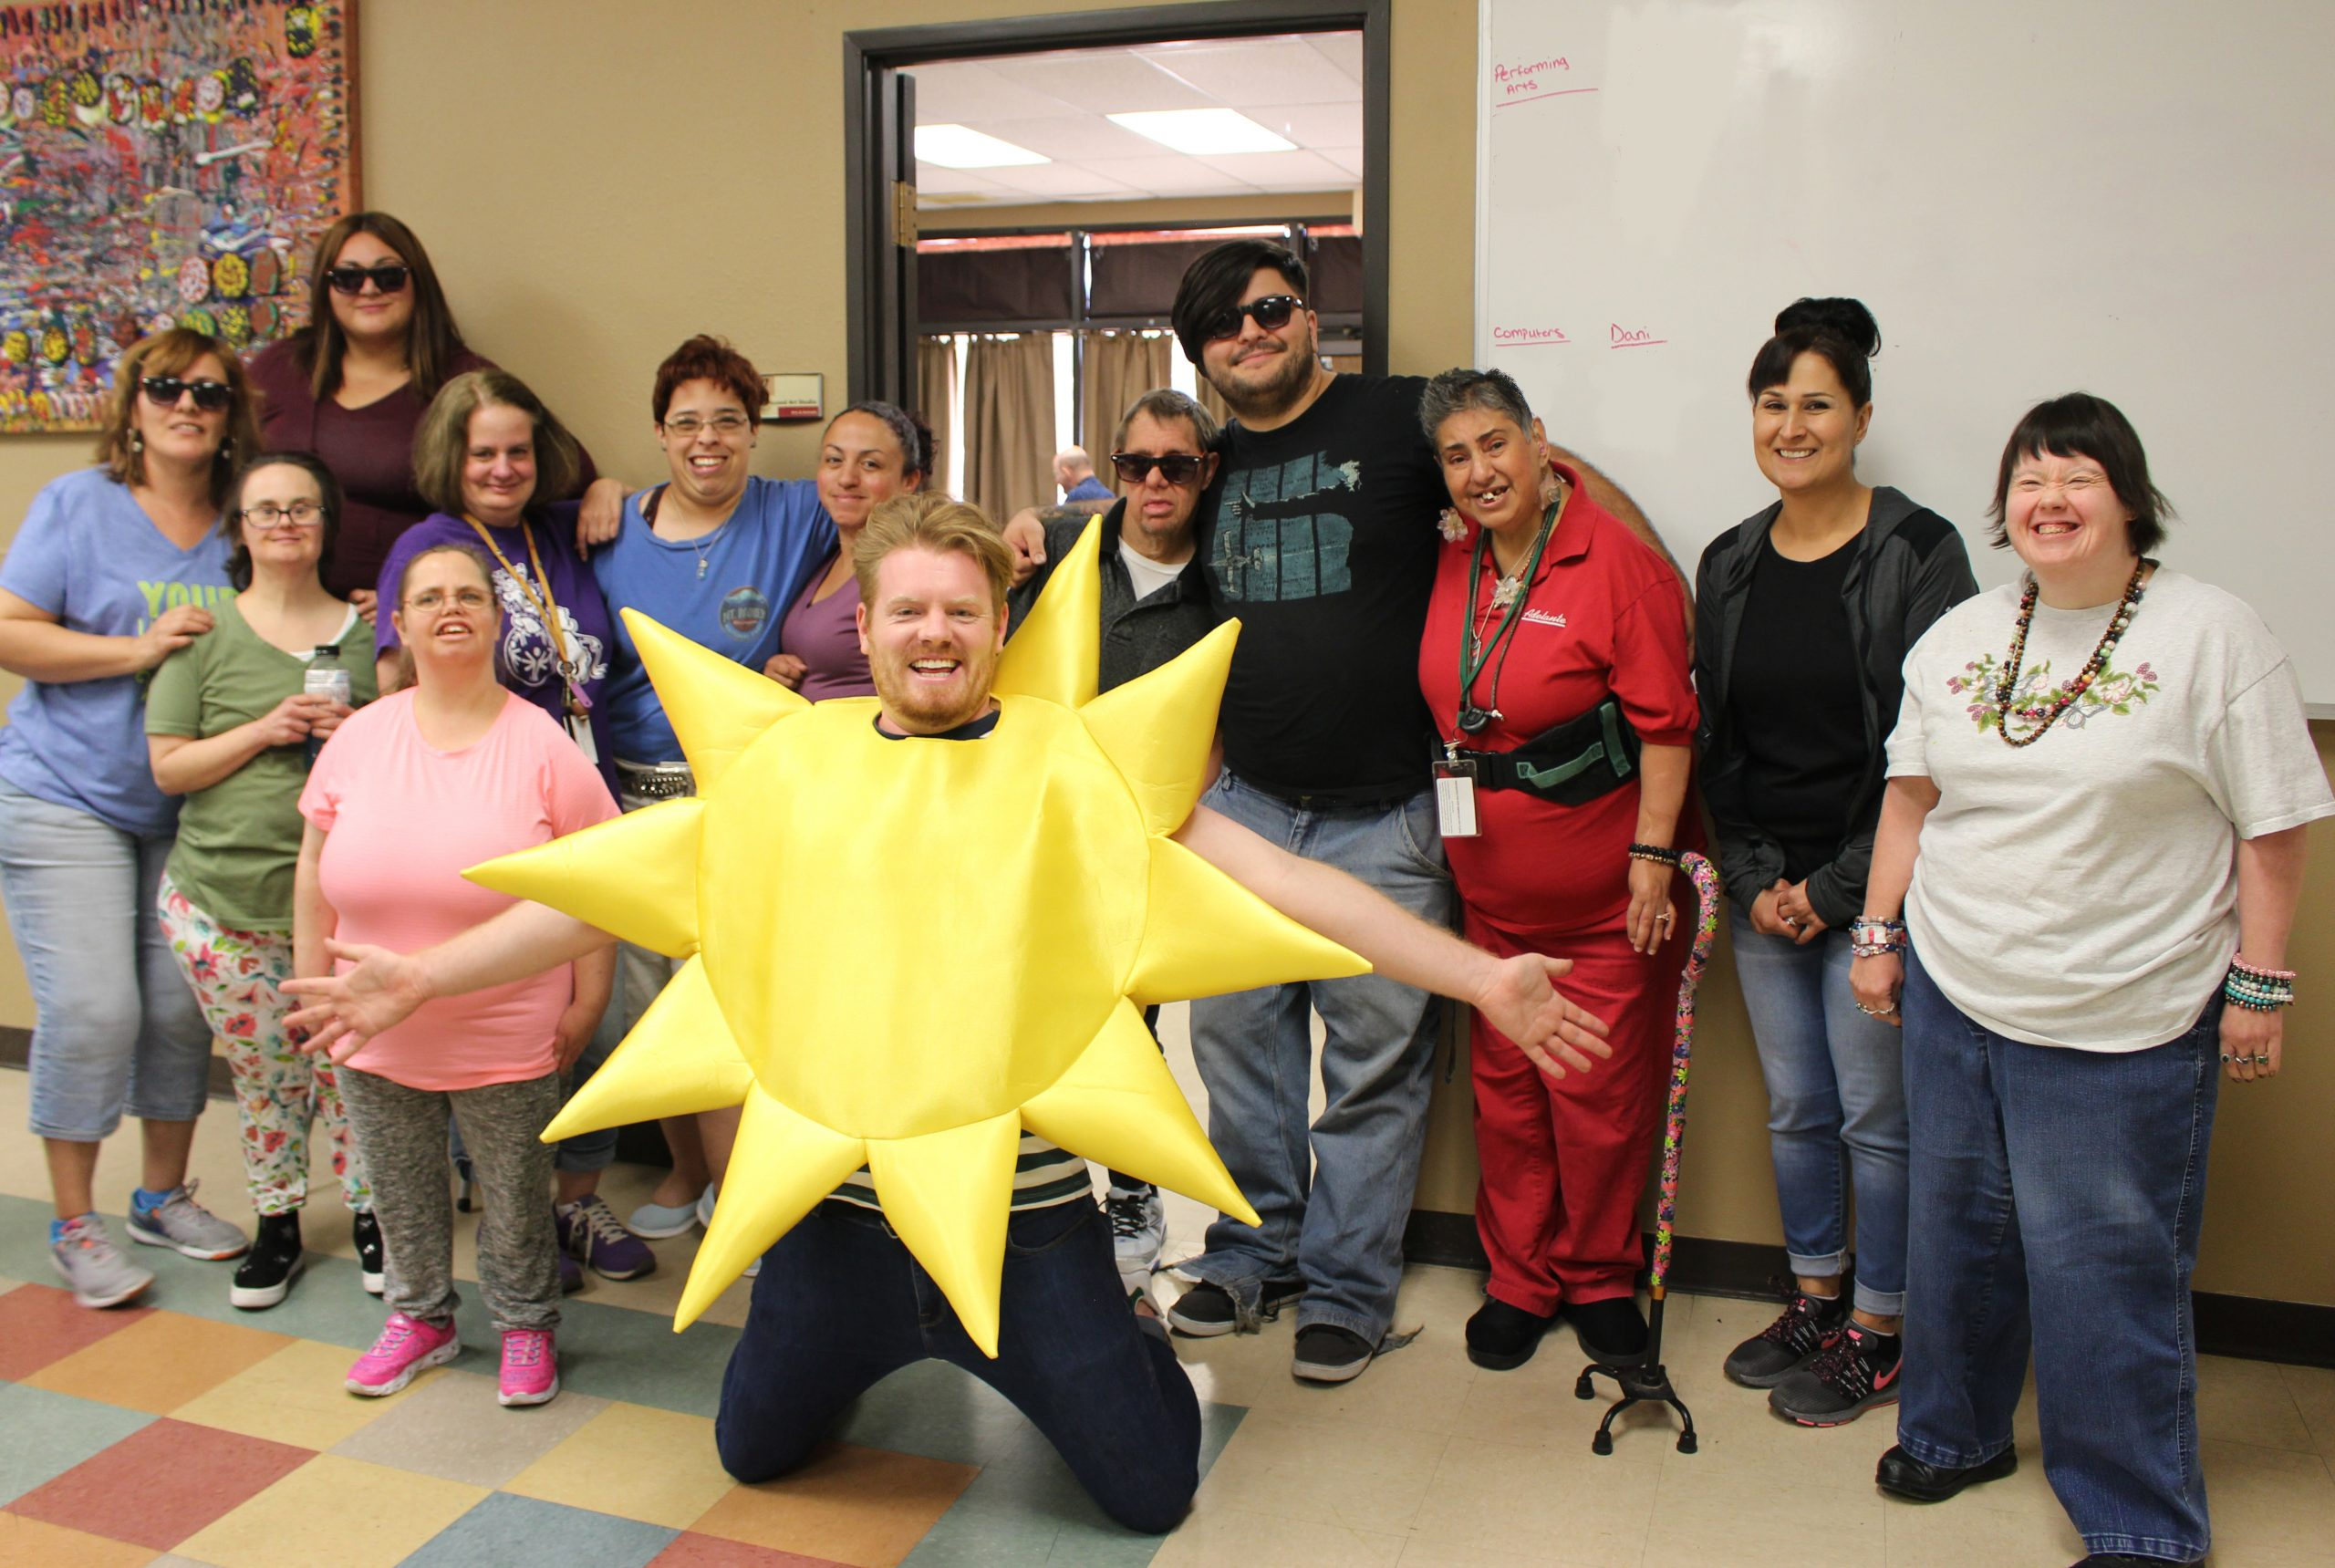 A man wearing a sun costume is kneeling in the center, smiling with his arms spread out. He is surrounded by smiling clients and other staff members.